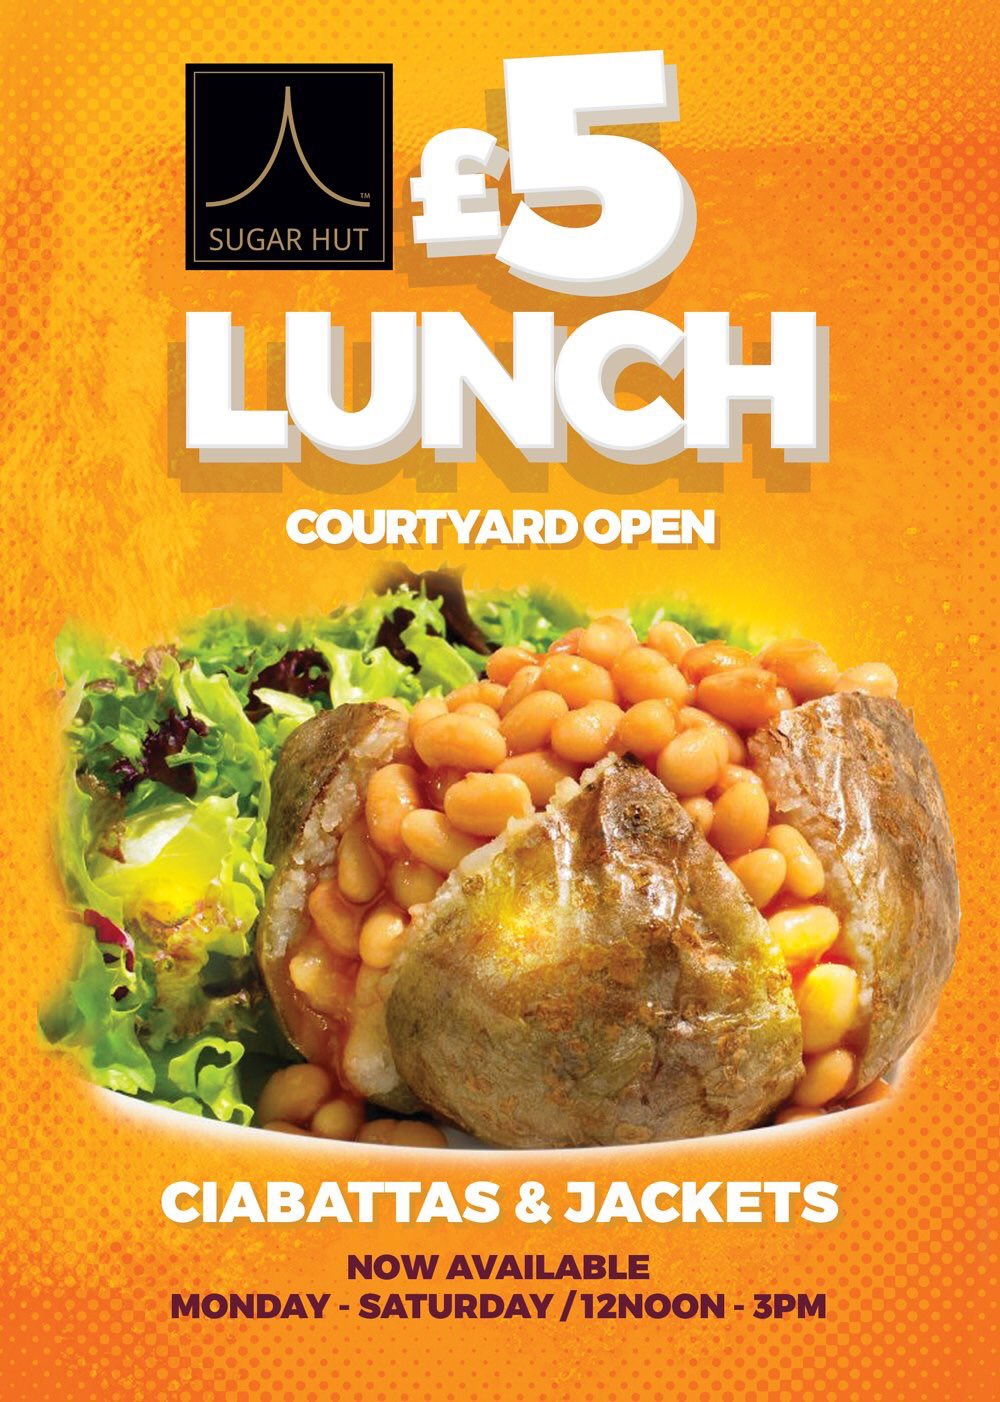 Who doesn't love a £5 lunch 🍴why not enjoy yours in our sunny courtyard ☀️ https://t.co/1DhcNWSiYi